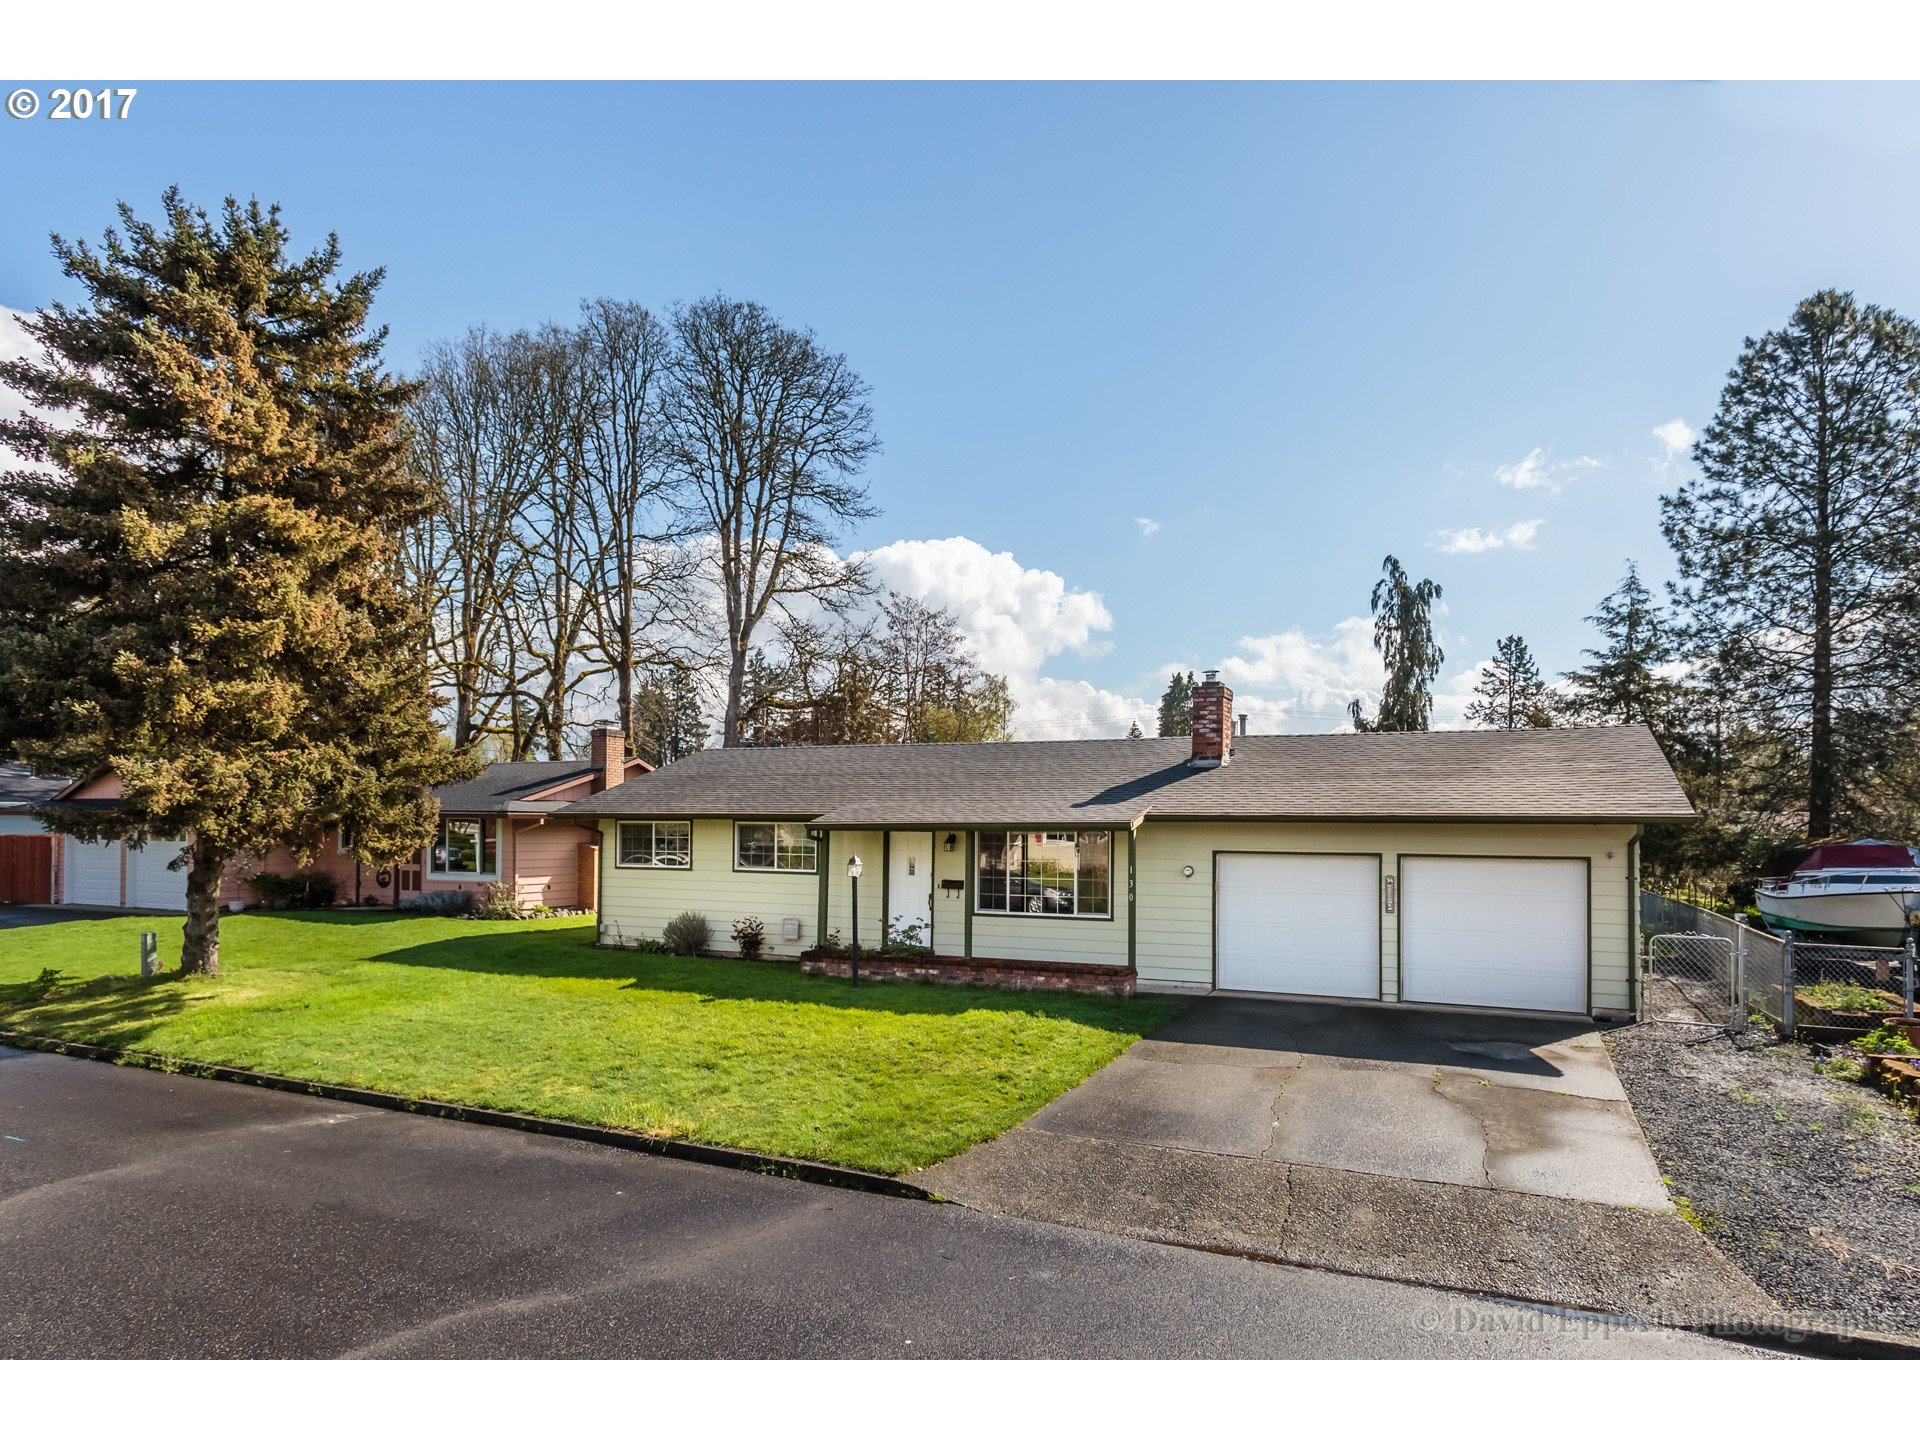 130 ALLENDALE, St. Helens, OR 97051